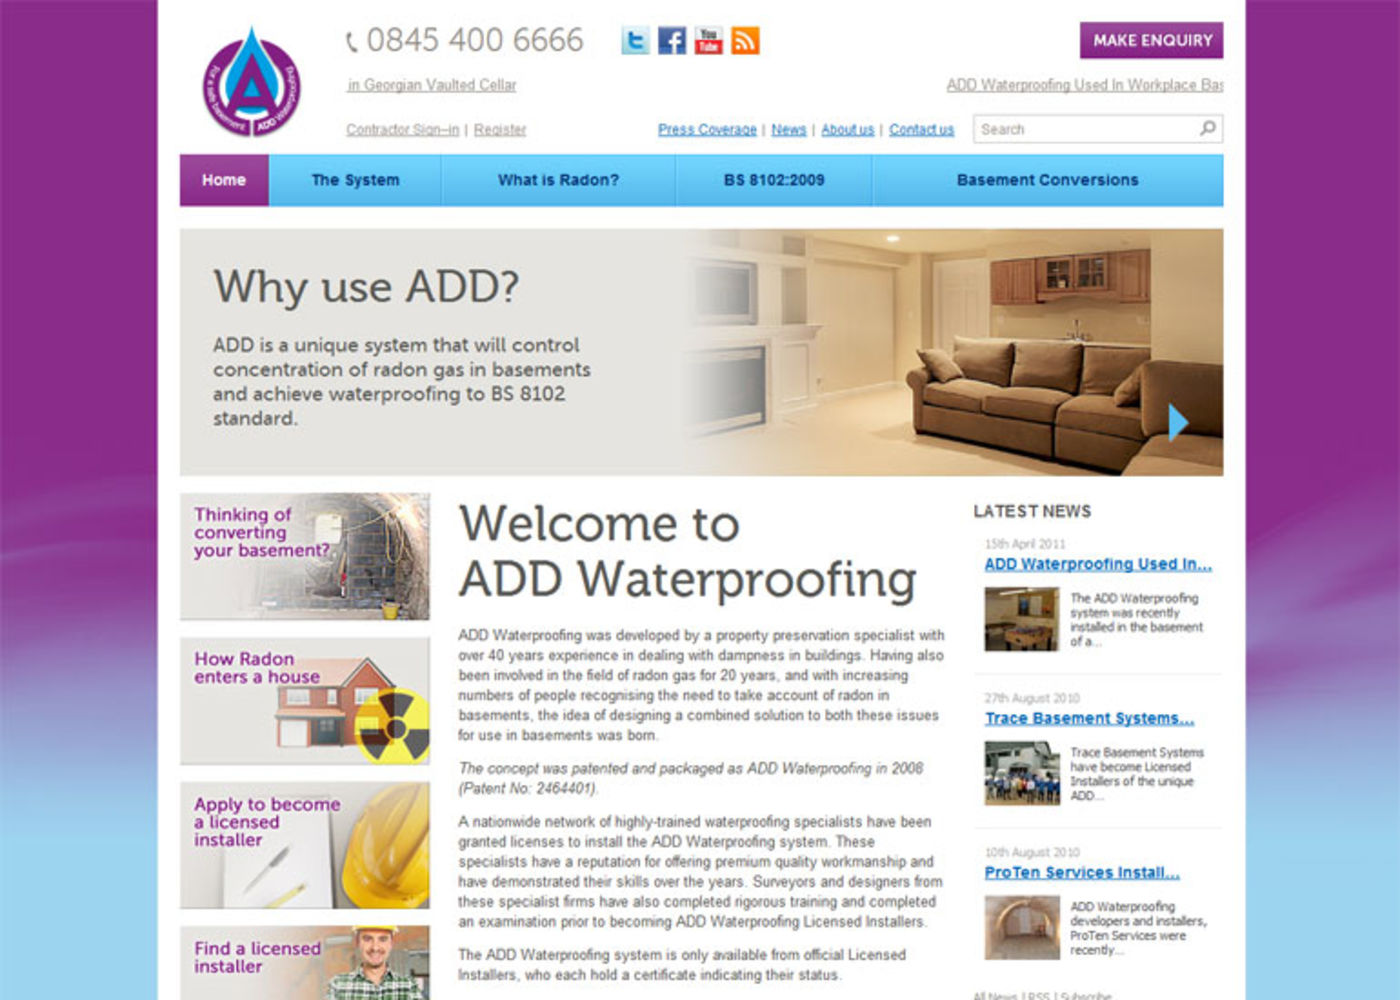 Add Waterproofing Homepage - Add Waterproofing